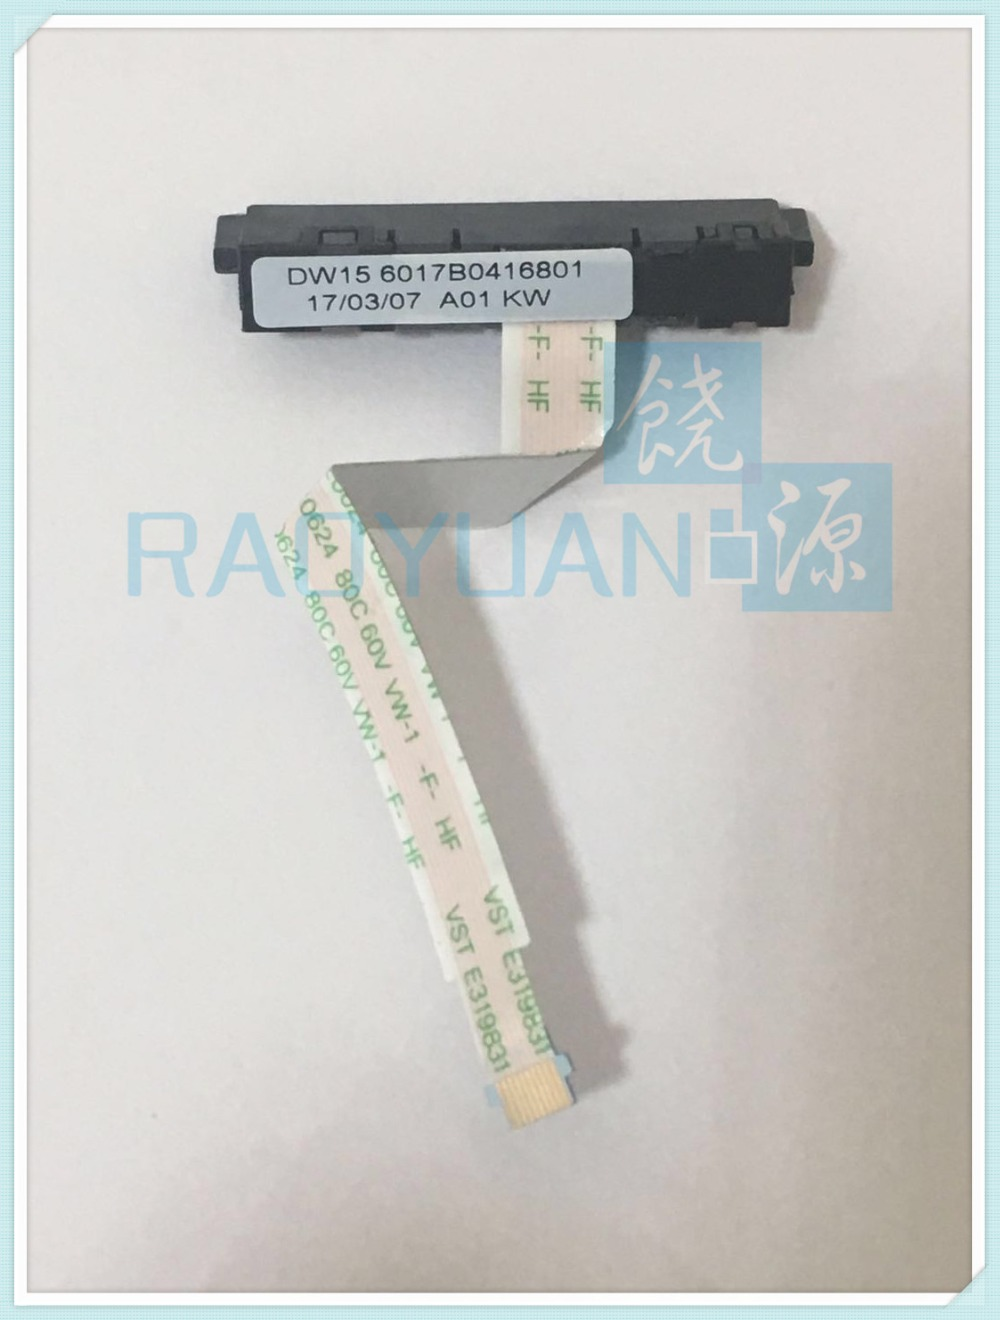 Genuine New For HP For ENVY 15 15-j105tx 15-j Laptop DW15 6017B0416801 SATA Hard Drive HDD Connector Flex Cable